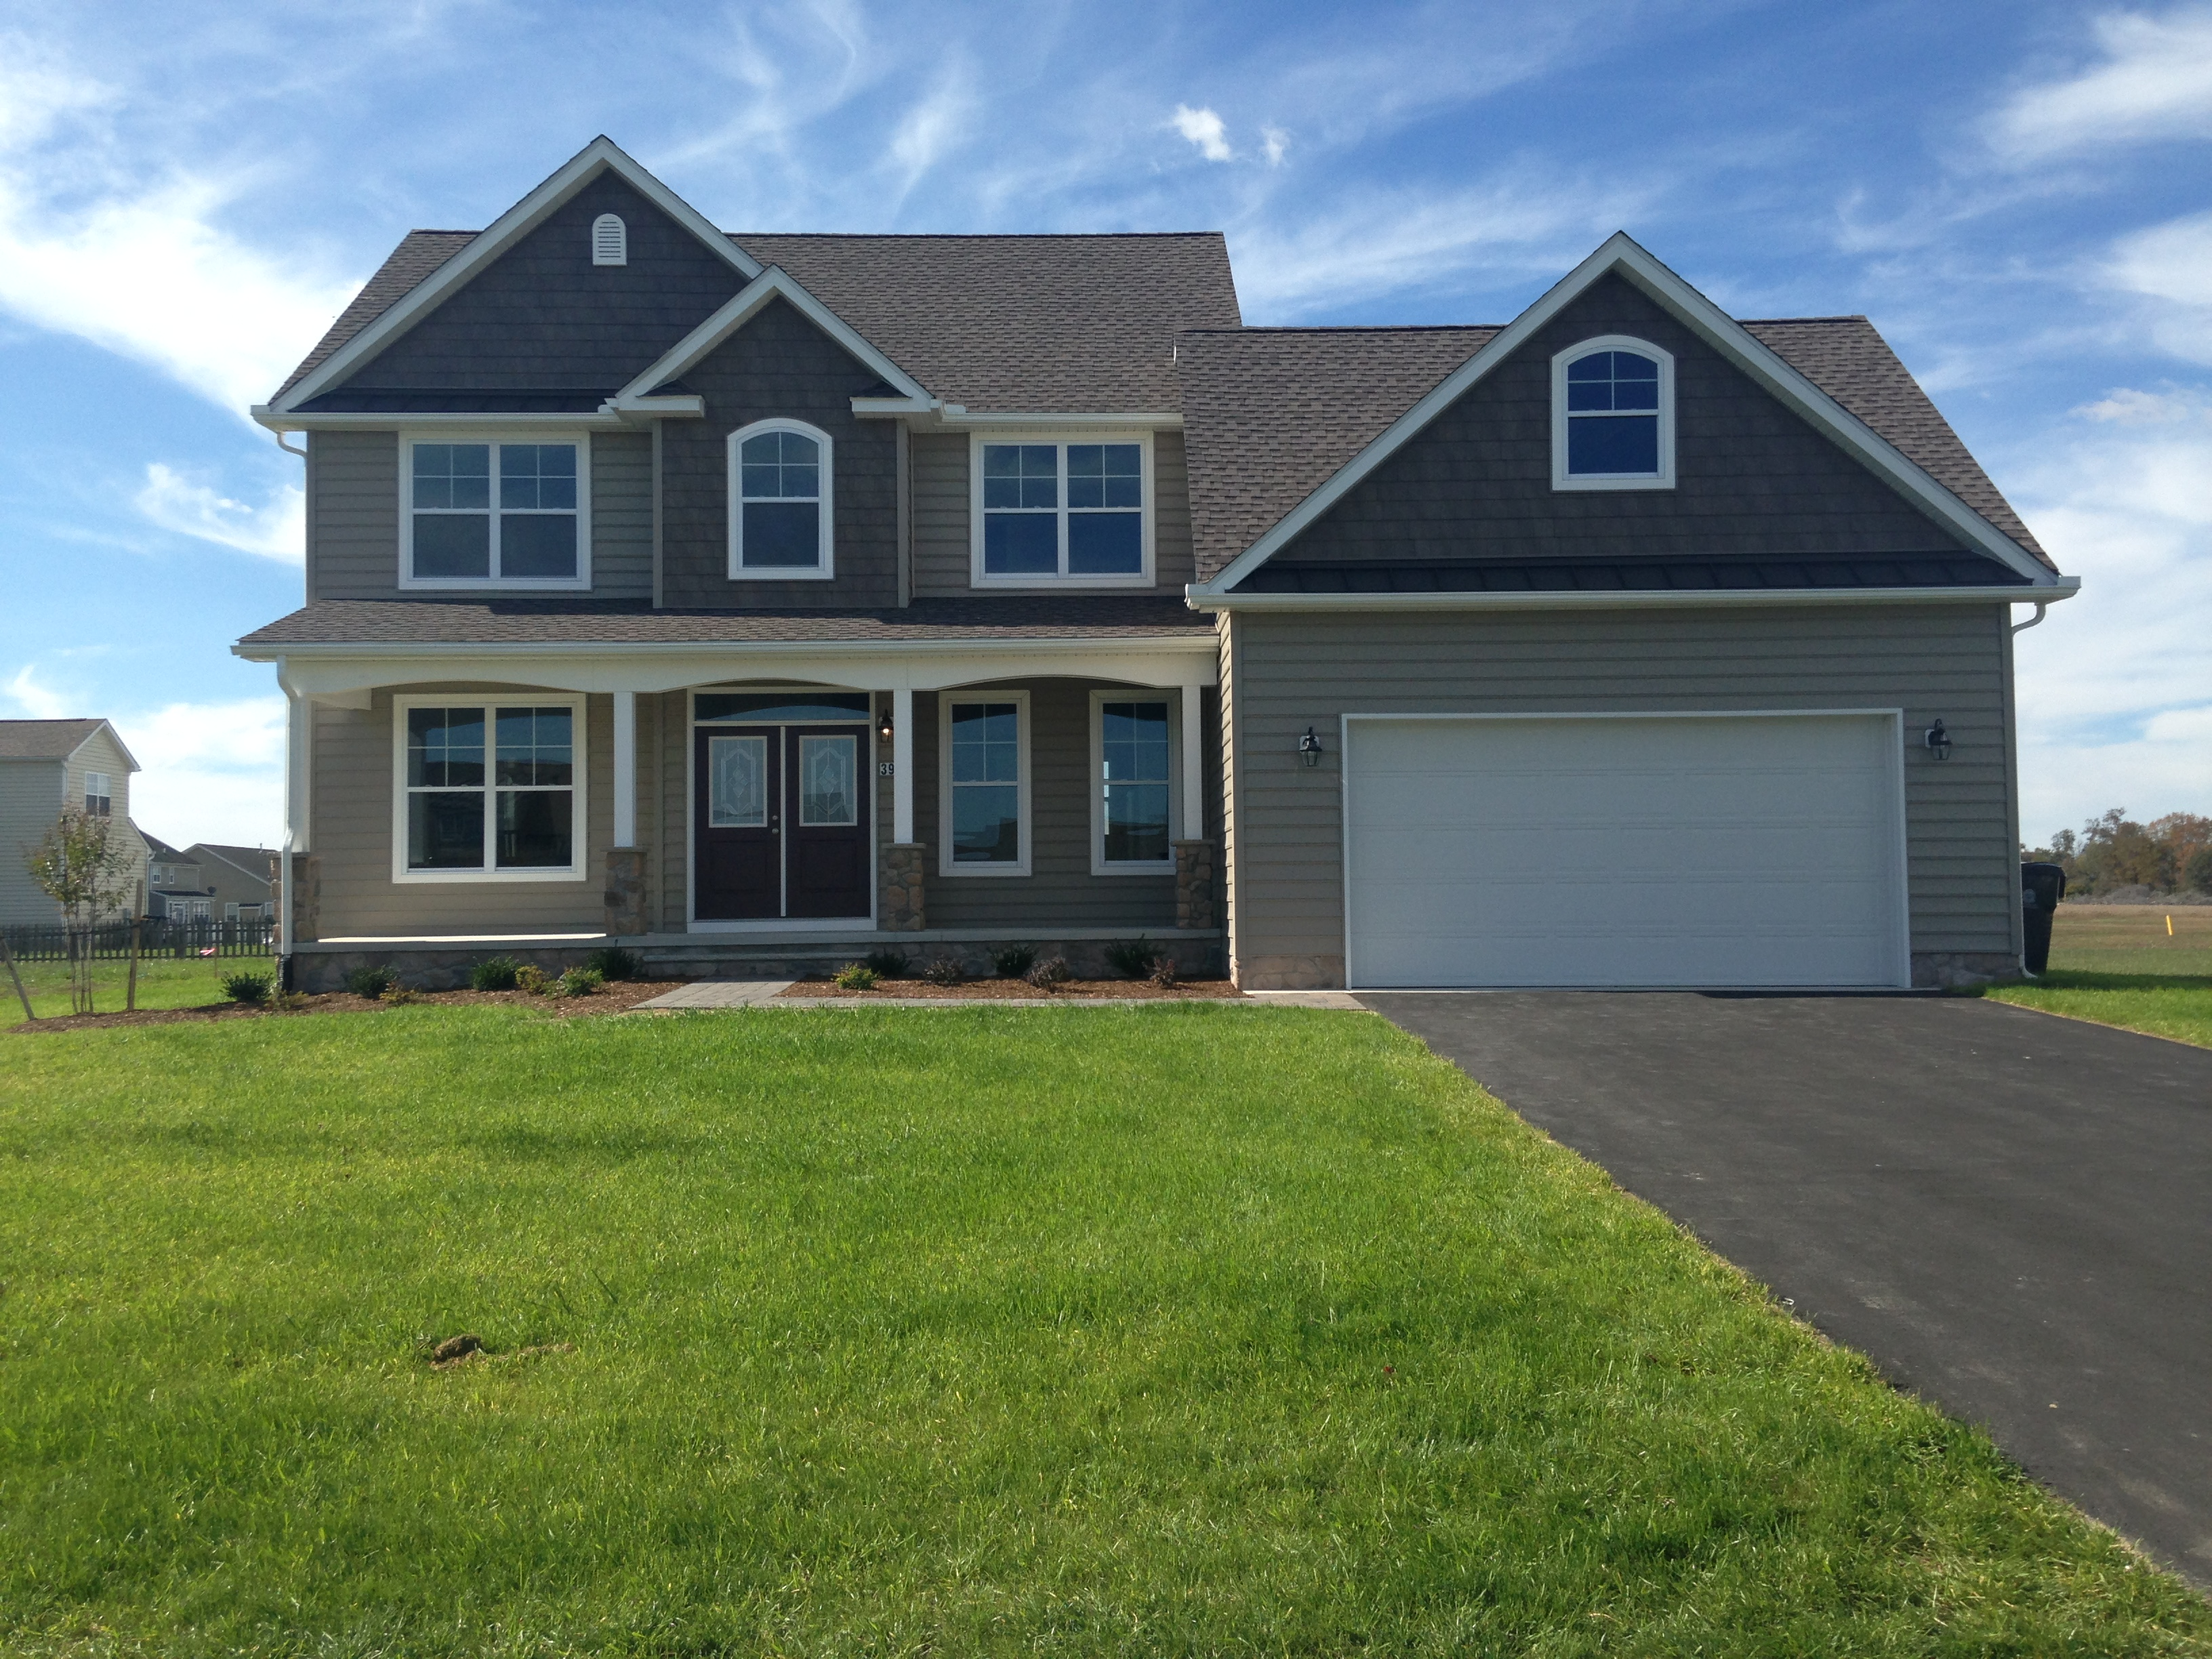 Satterfield homes coupons near me in felton 8coupons for Local home builders near me